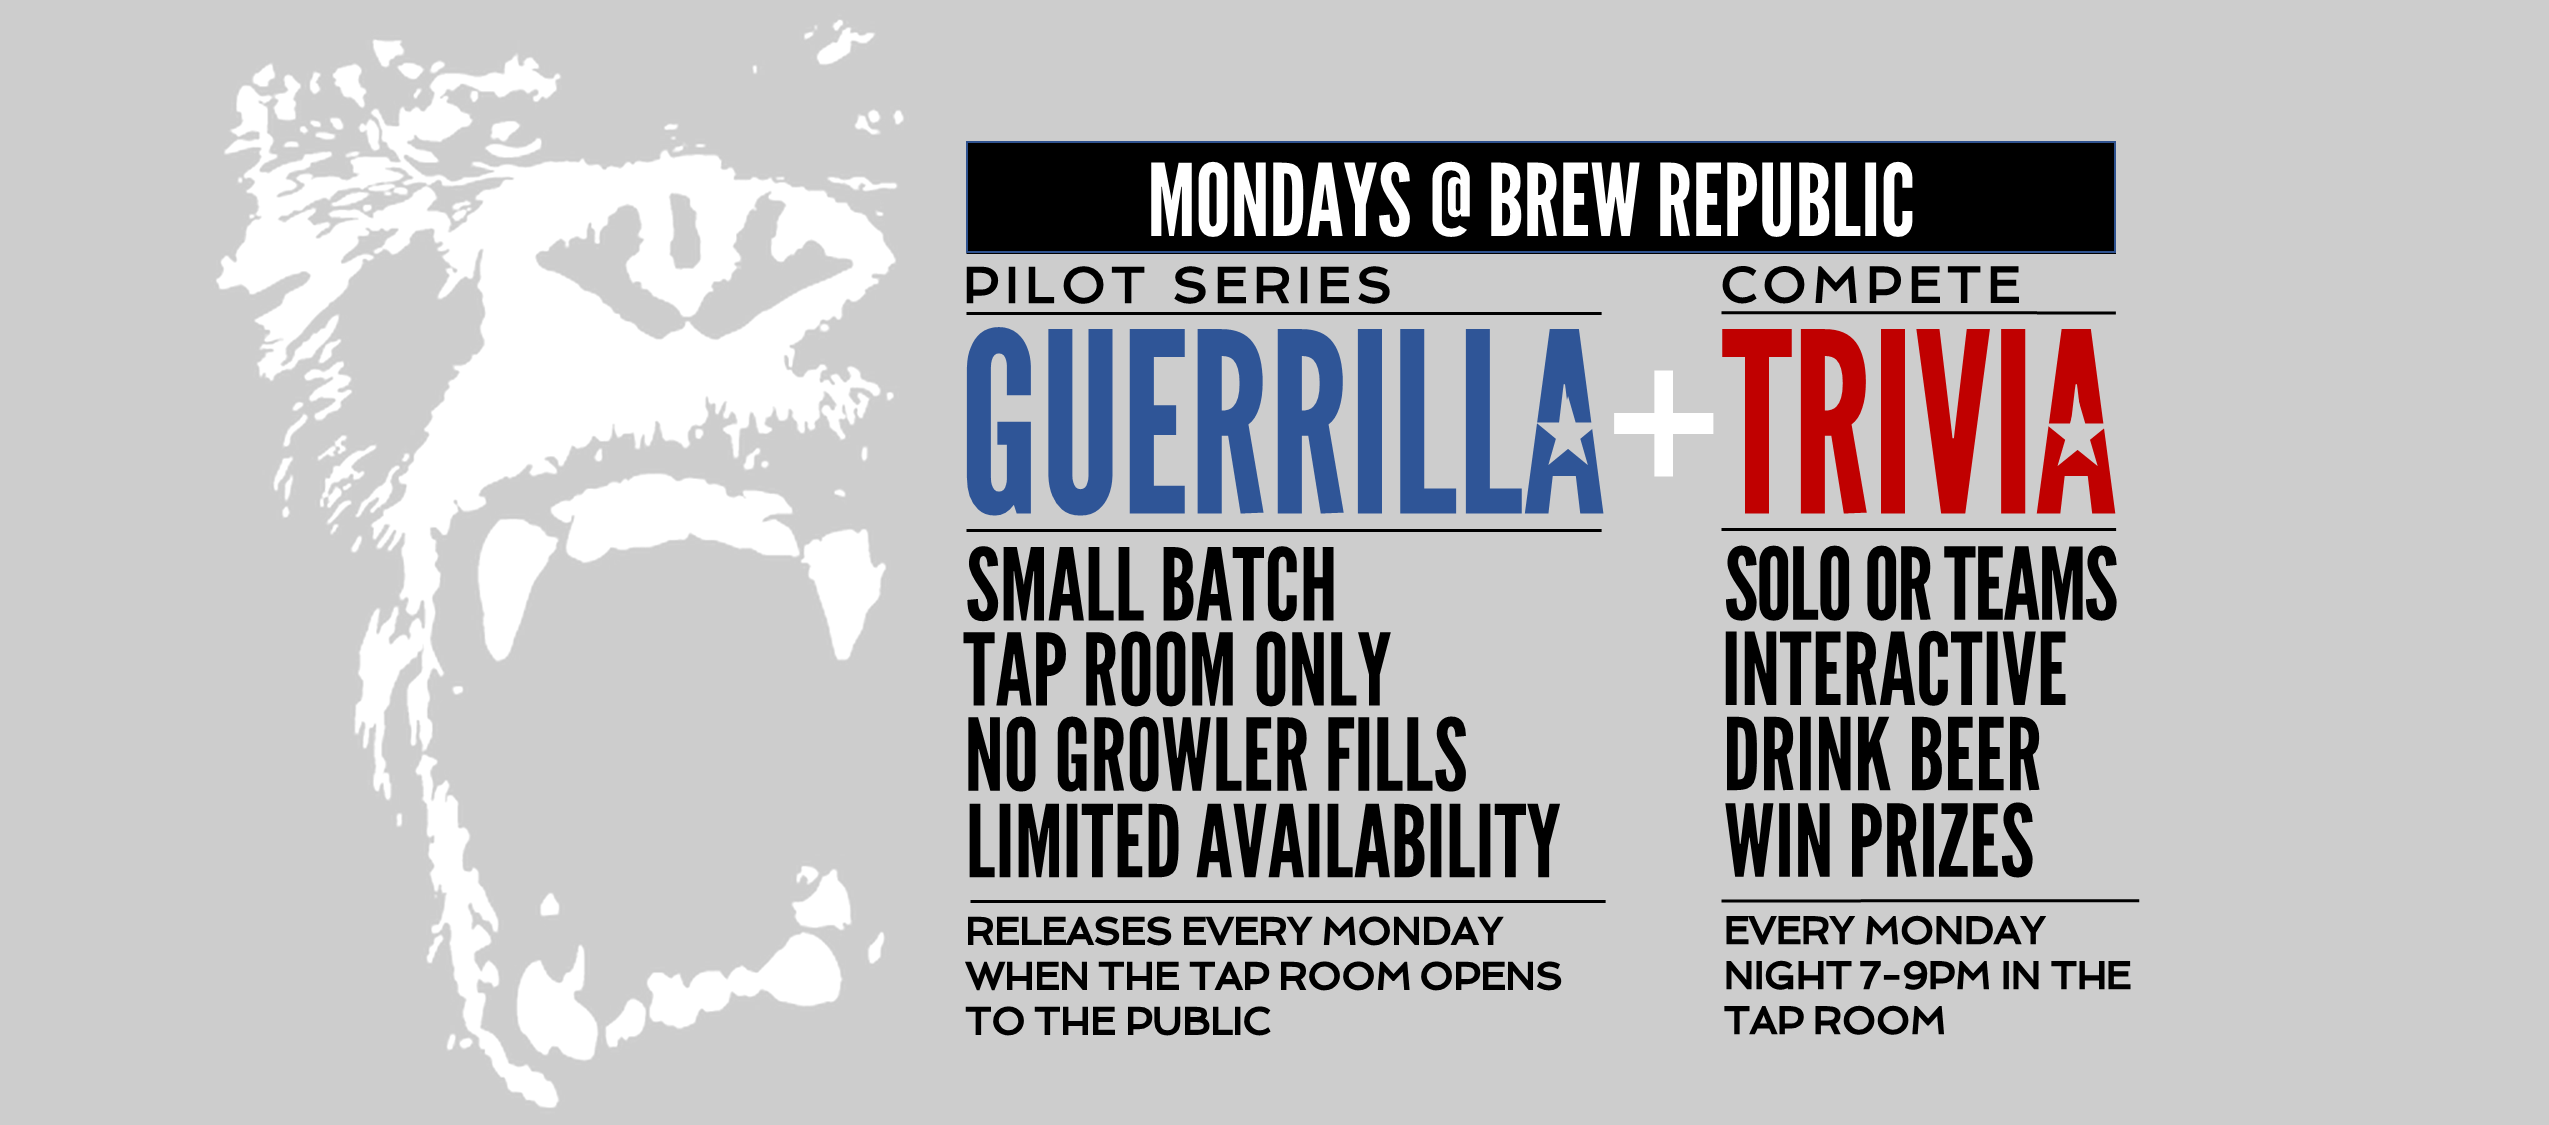 Guerilla Release & Trivia on Mondays!